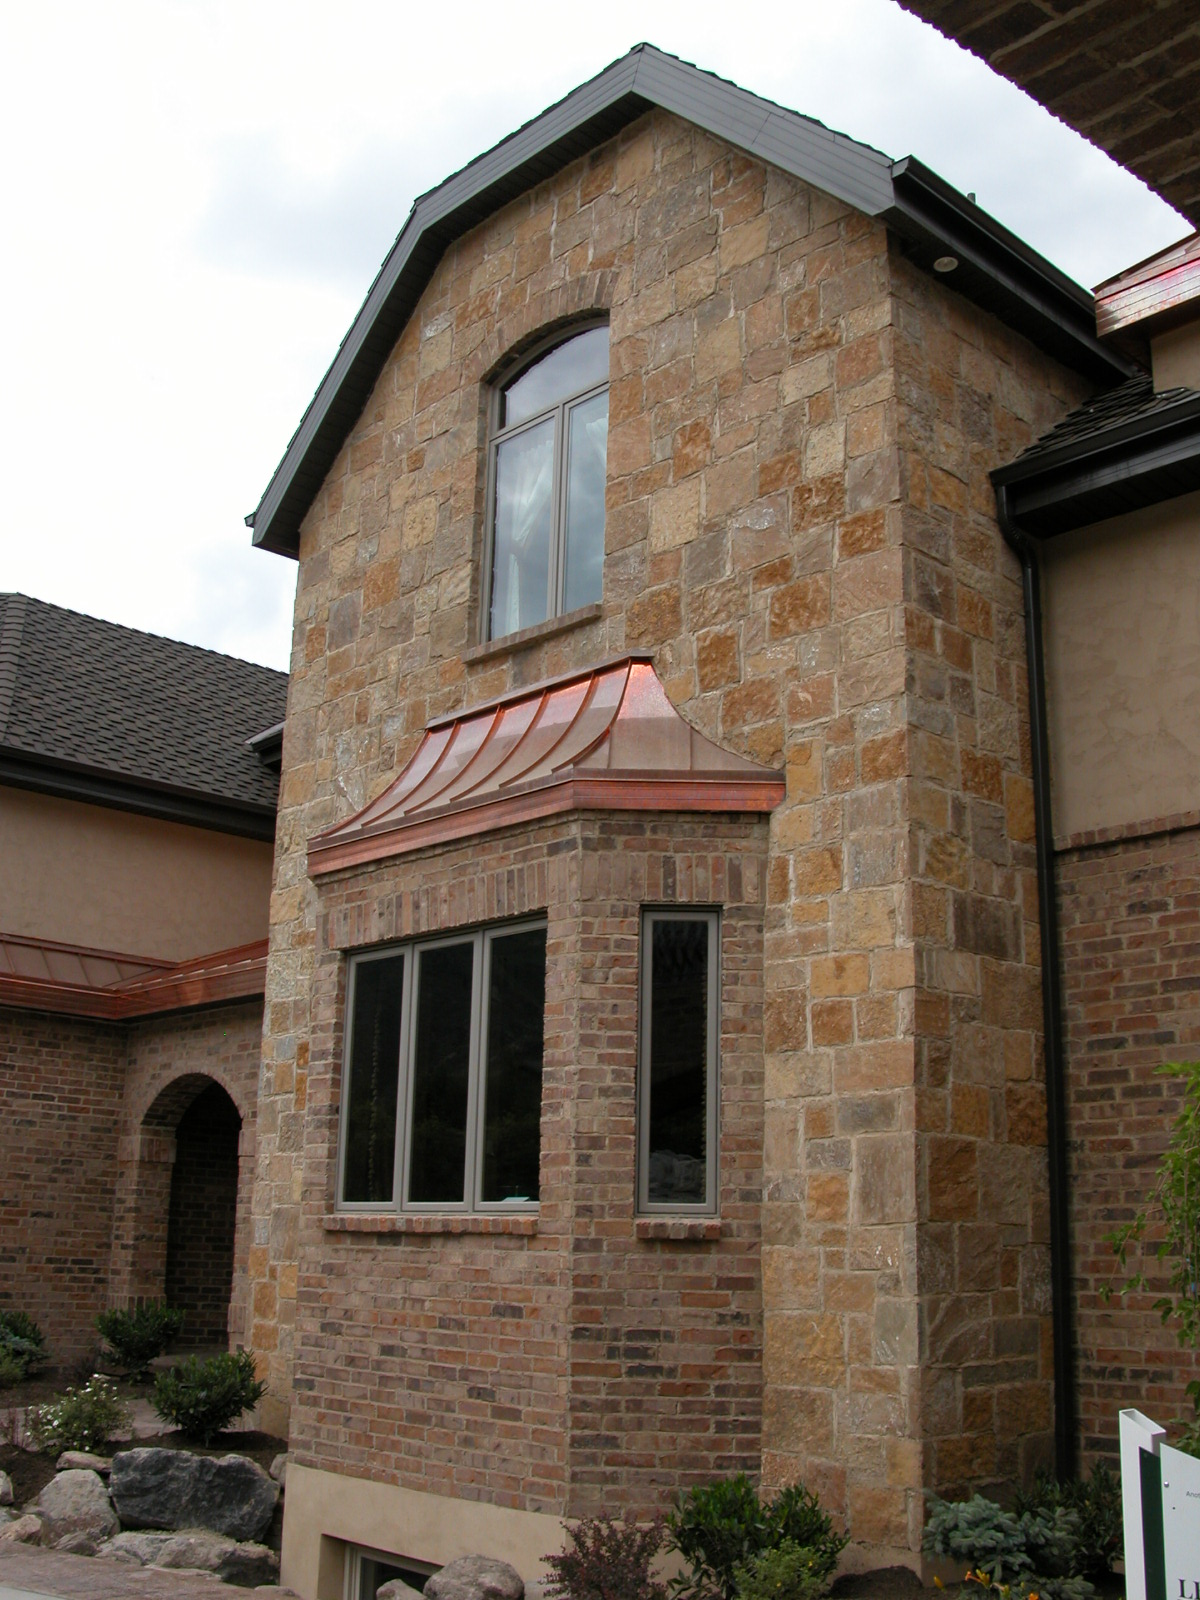 Stone And Brick  binations together with Old French Cottage One Story Floor Plan besides Rocks On Exterior Walls House Images additionally Outdoor Fireplace With Pizza Oven Traditional Patio also Stone And Brick  binations. on rock brick combination exterior home